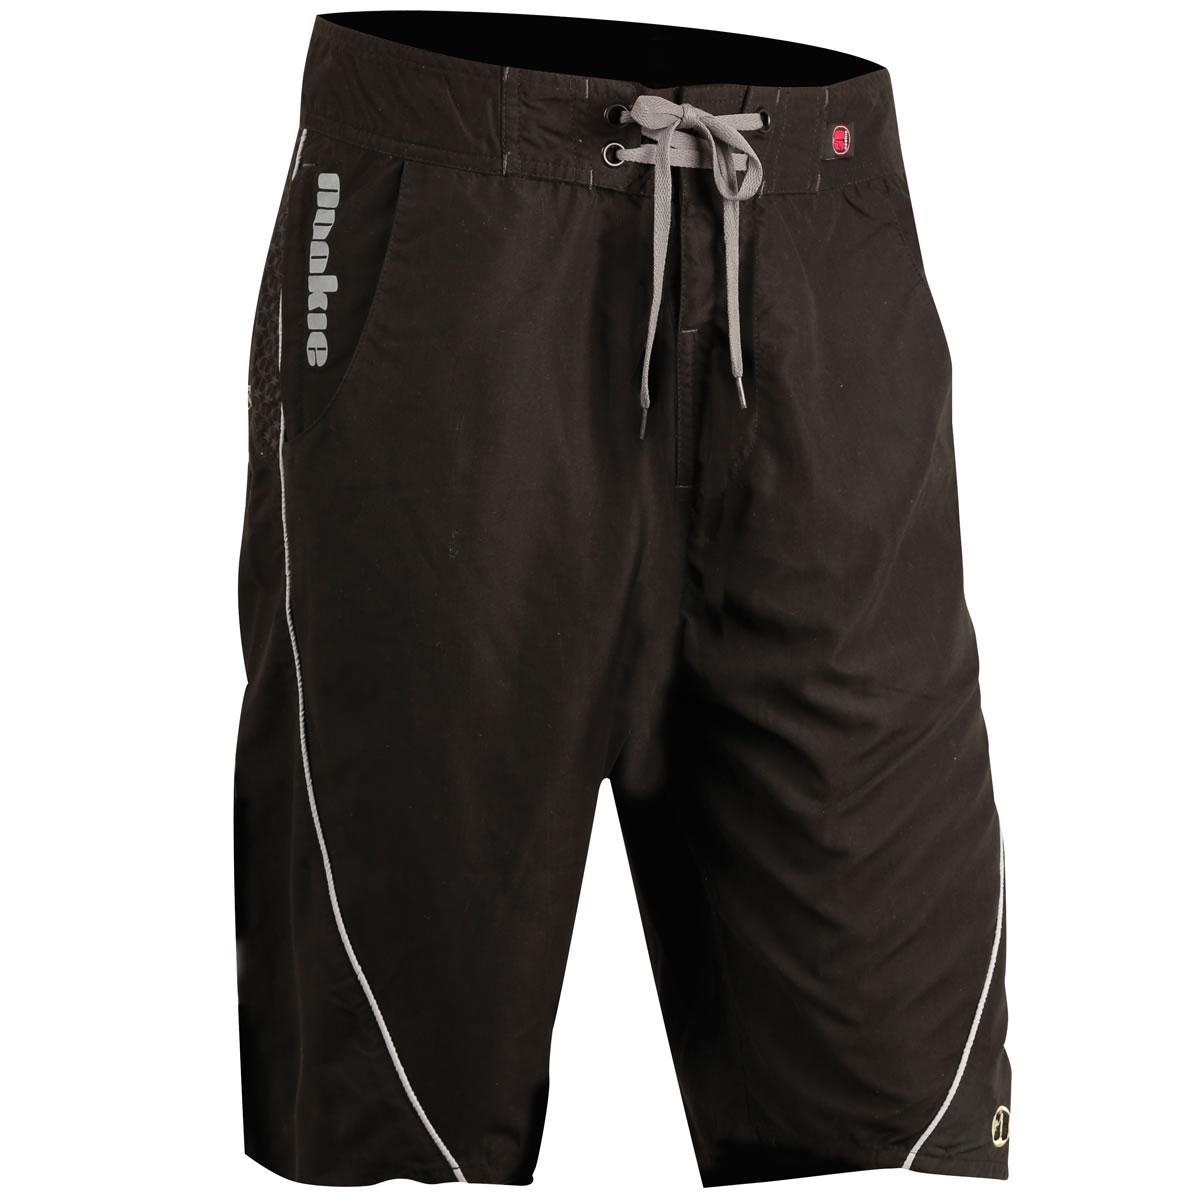 875471273a Boardies in Black with Grey Trim & Detail -Nookie Board Shorts for River  Sea & Surf